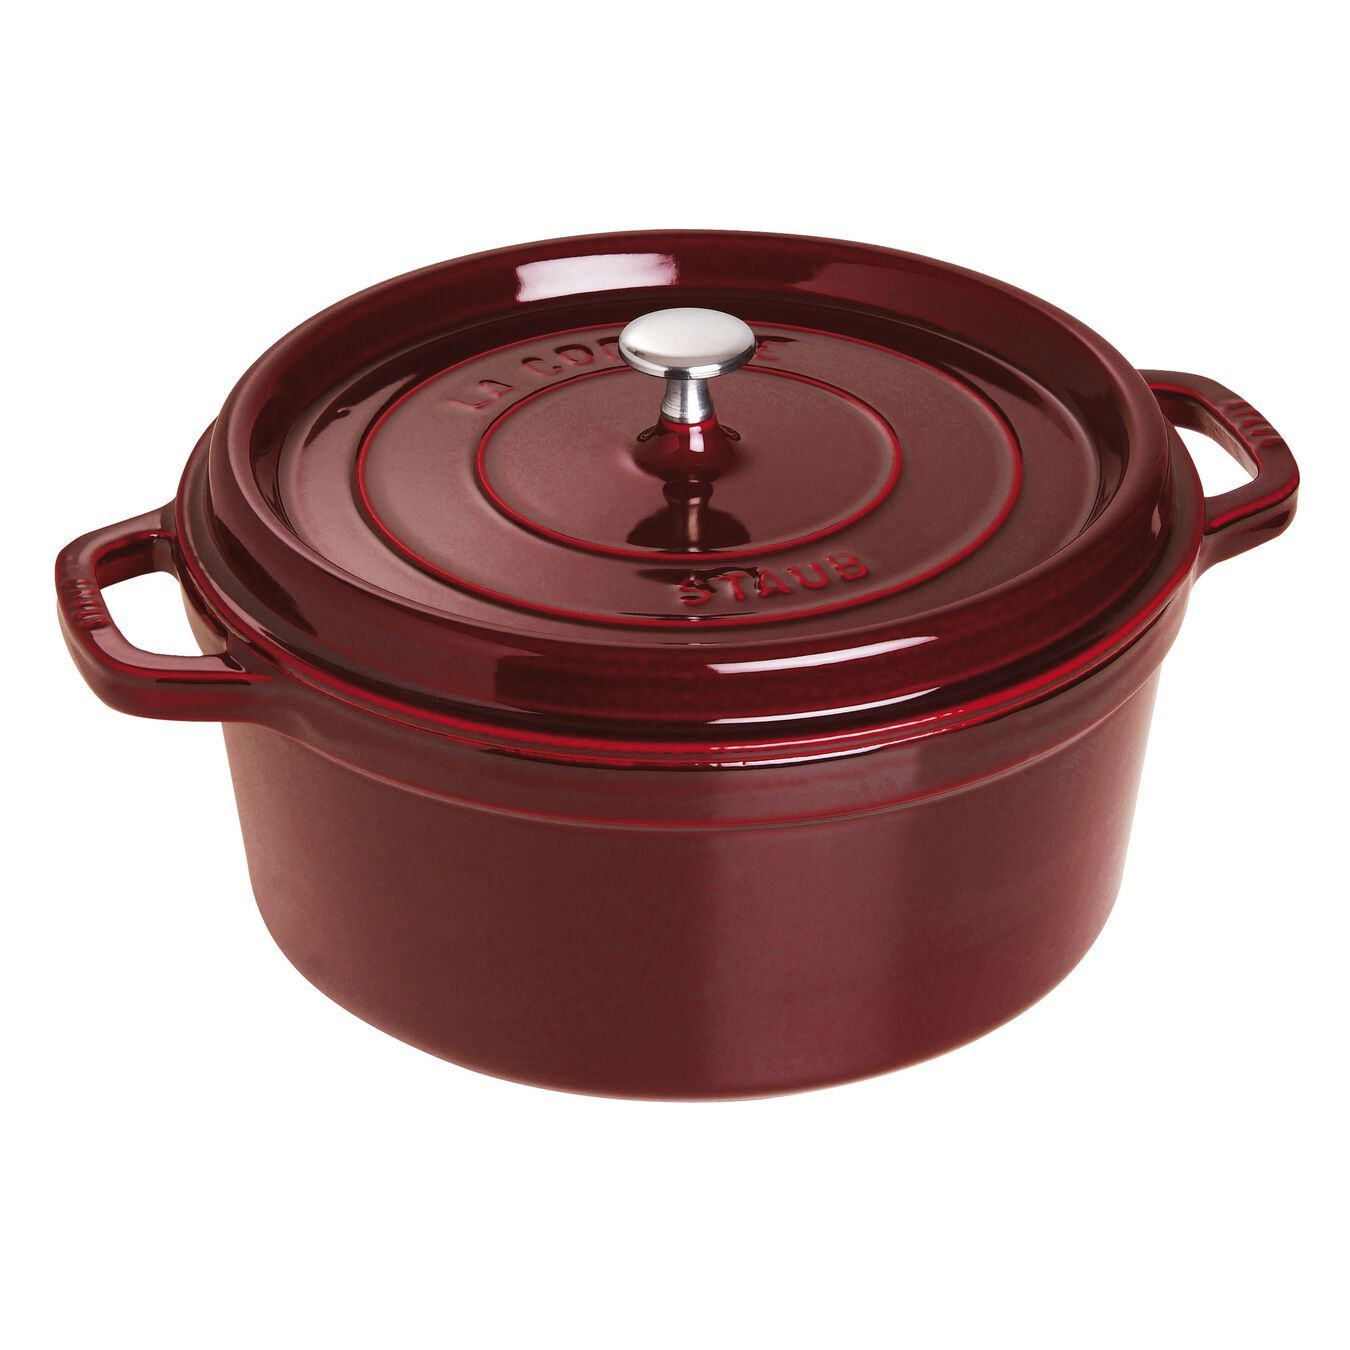 Cocotte 28 cm, rund, Grenadine-Rot, Gusseisen,,large 1